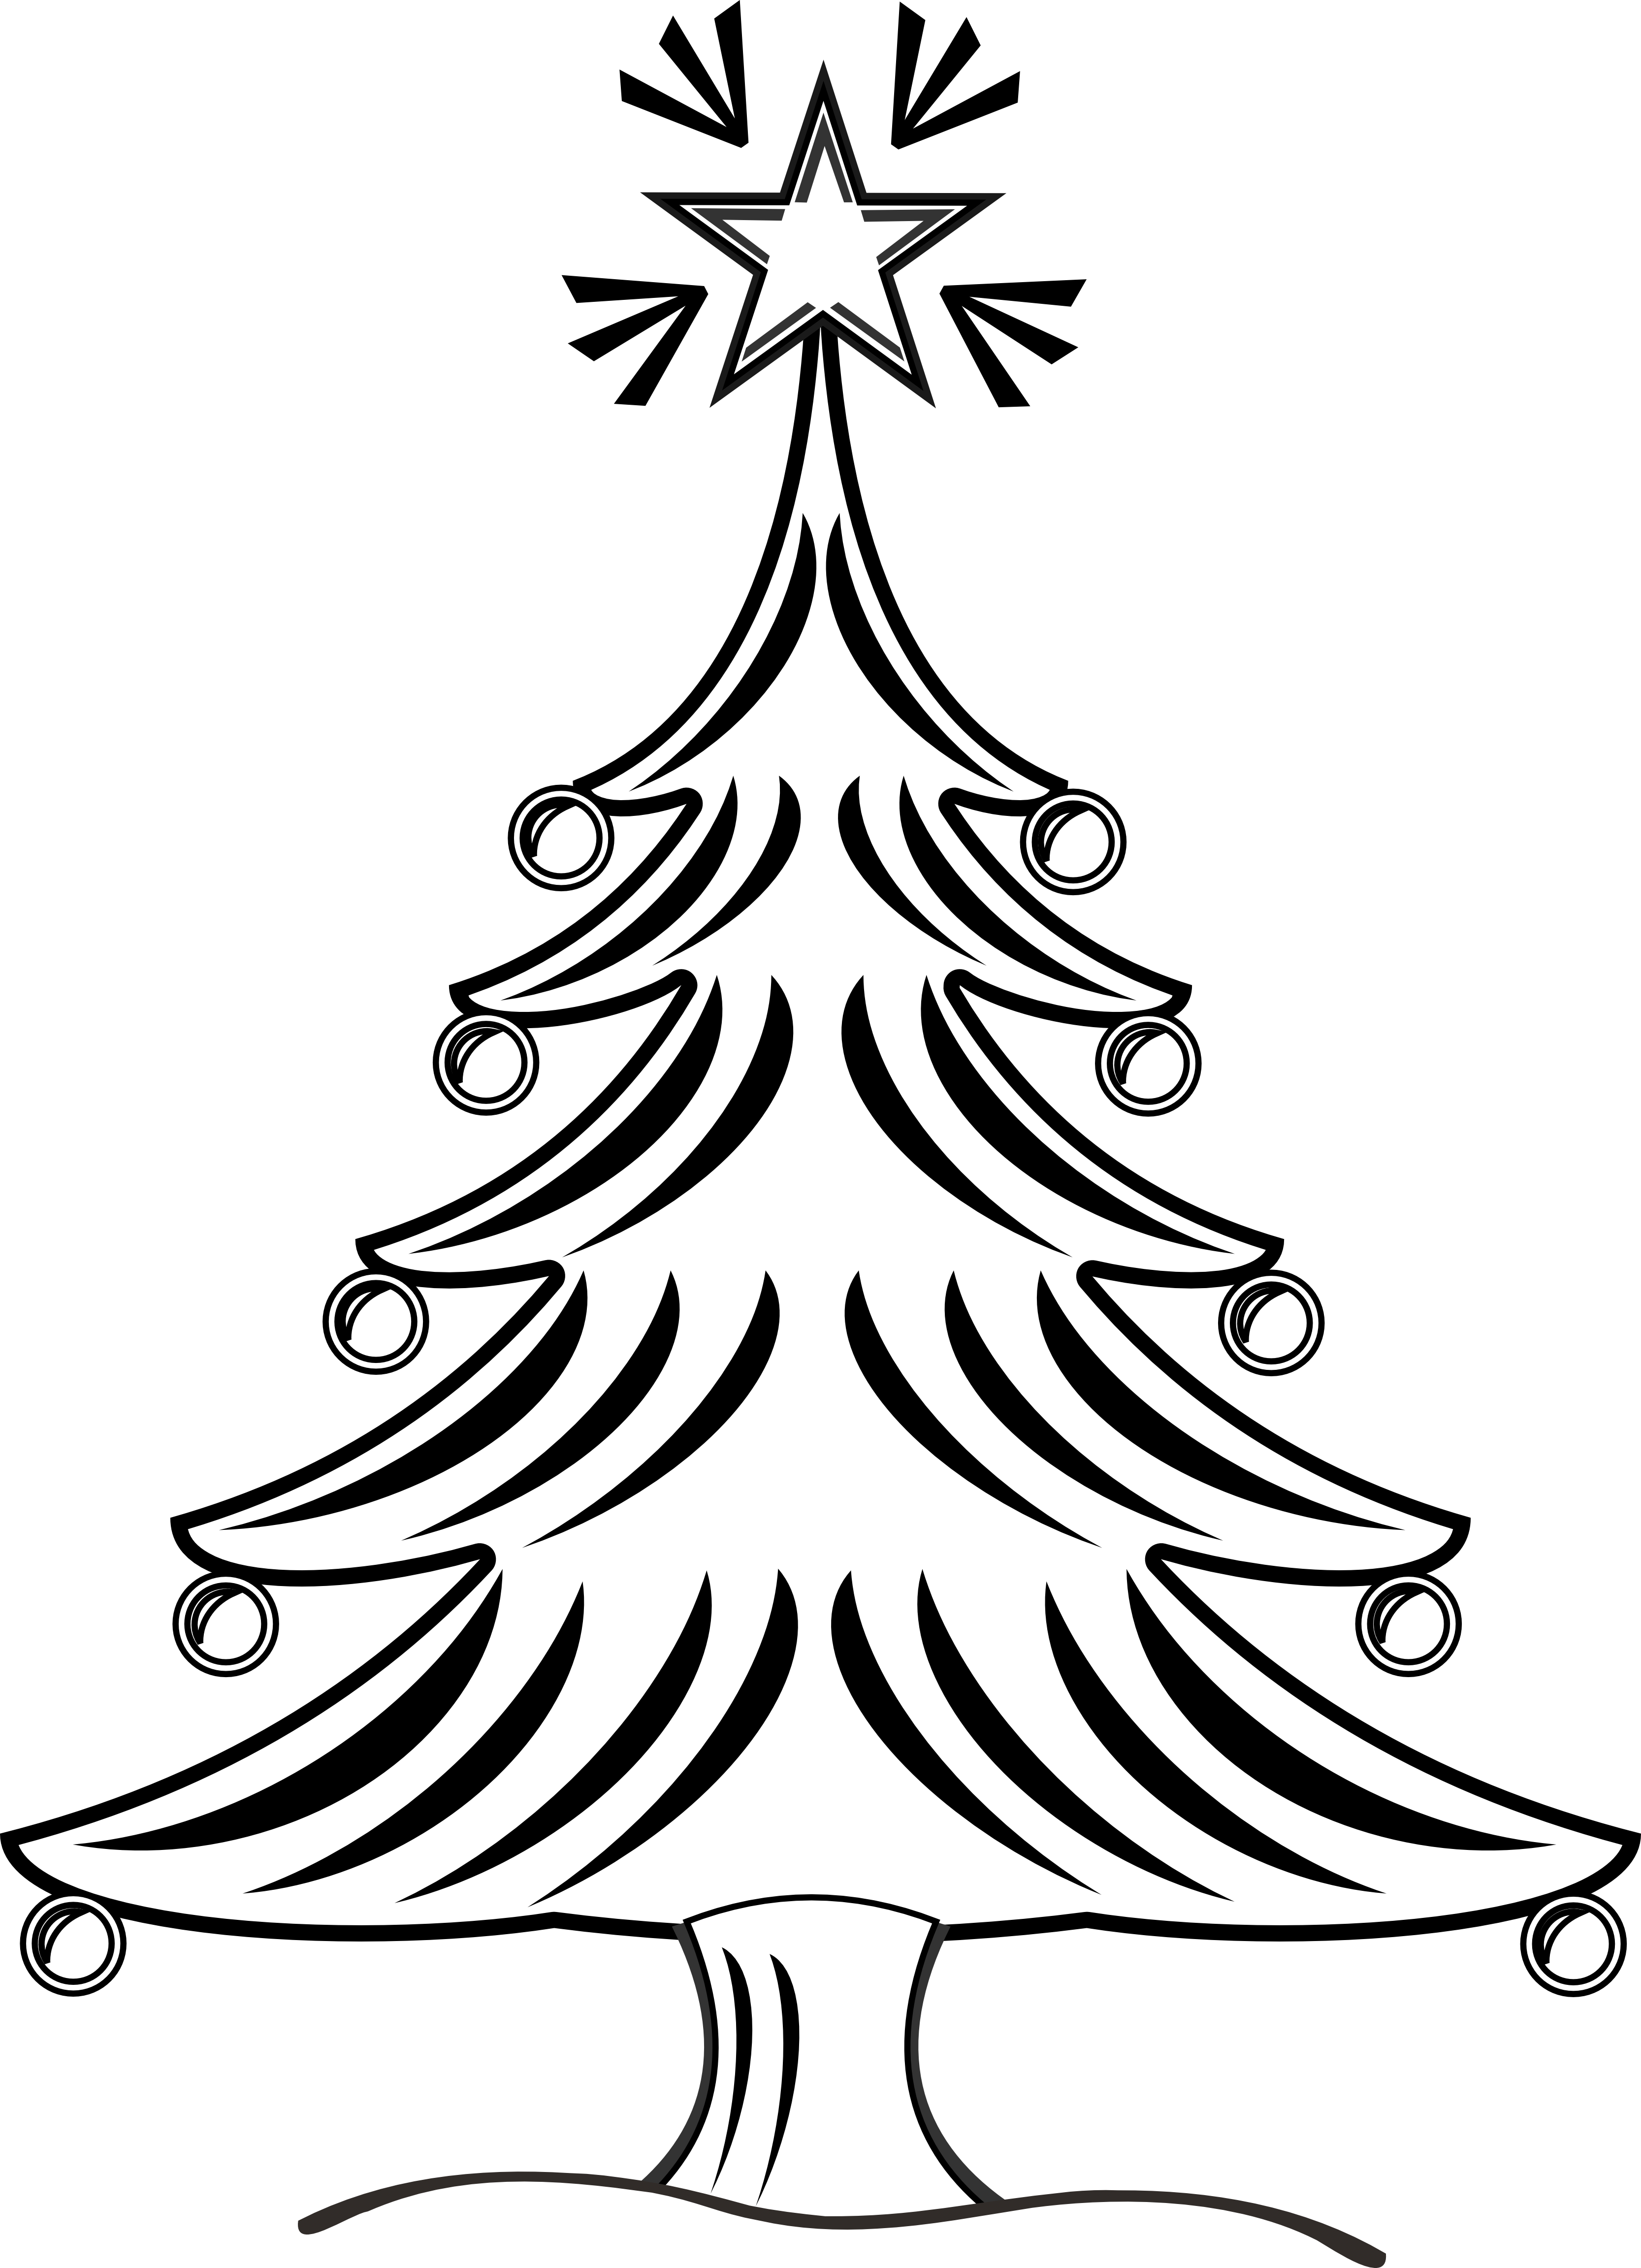 Black And White Christmas Tree Clip Art ClipArt Best